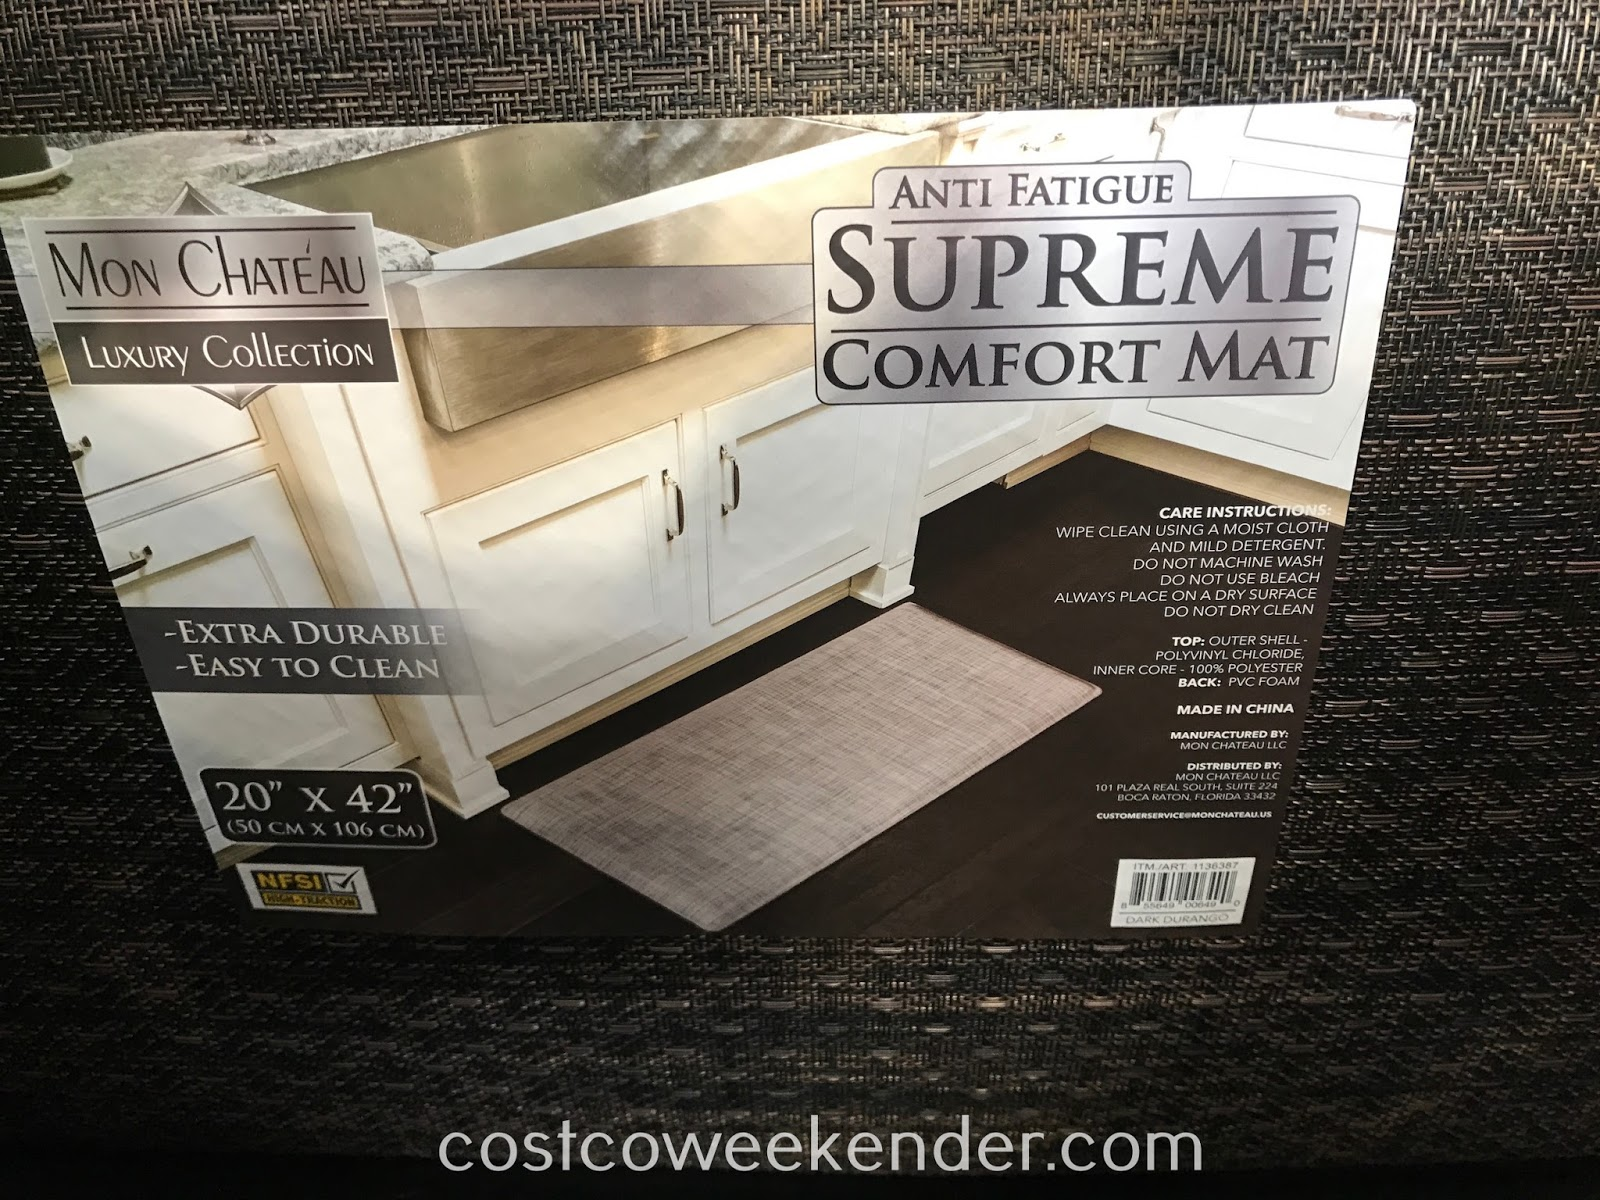 Costco 1136387 - Mon Chateau Anti Fatigue Supreme Comfort Mat: looks just as good as it is functional